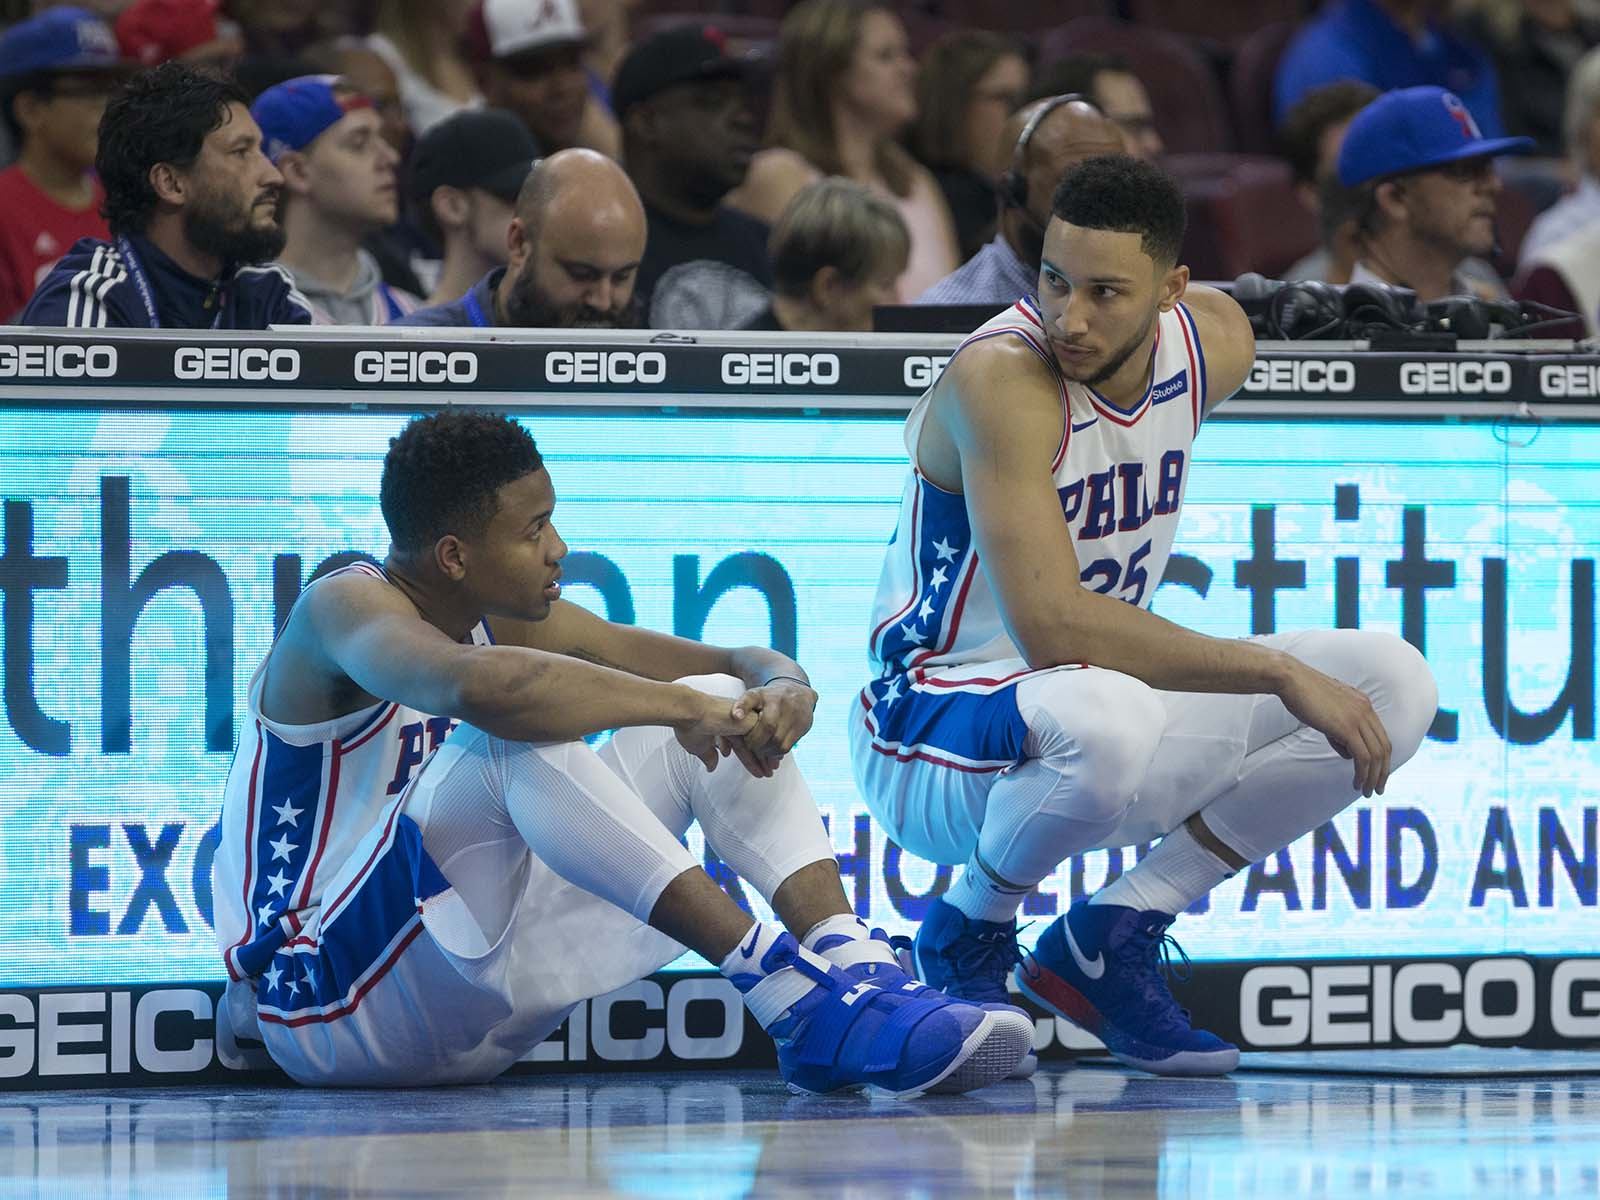 Markelle Fultz and Ben Simmons